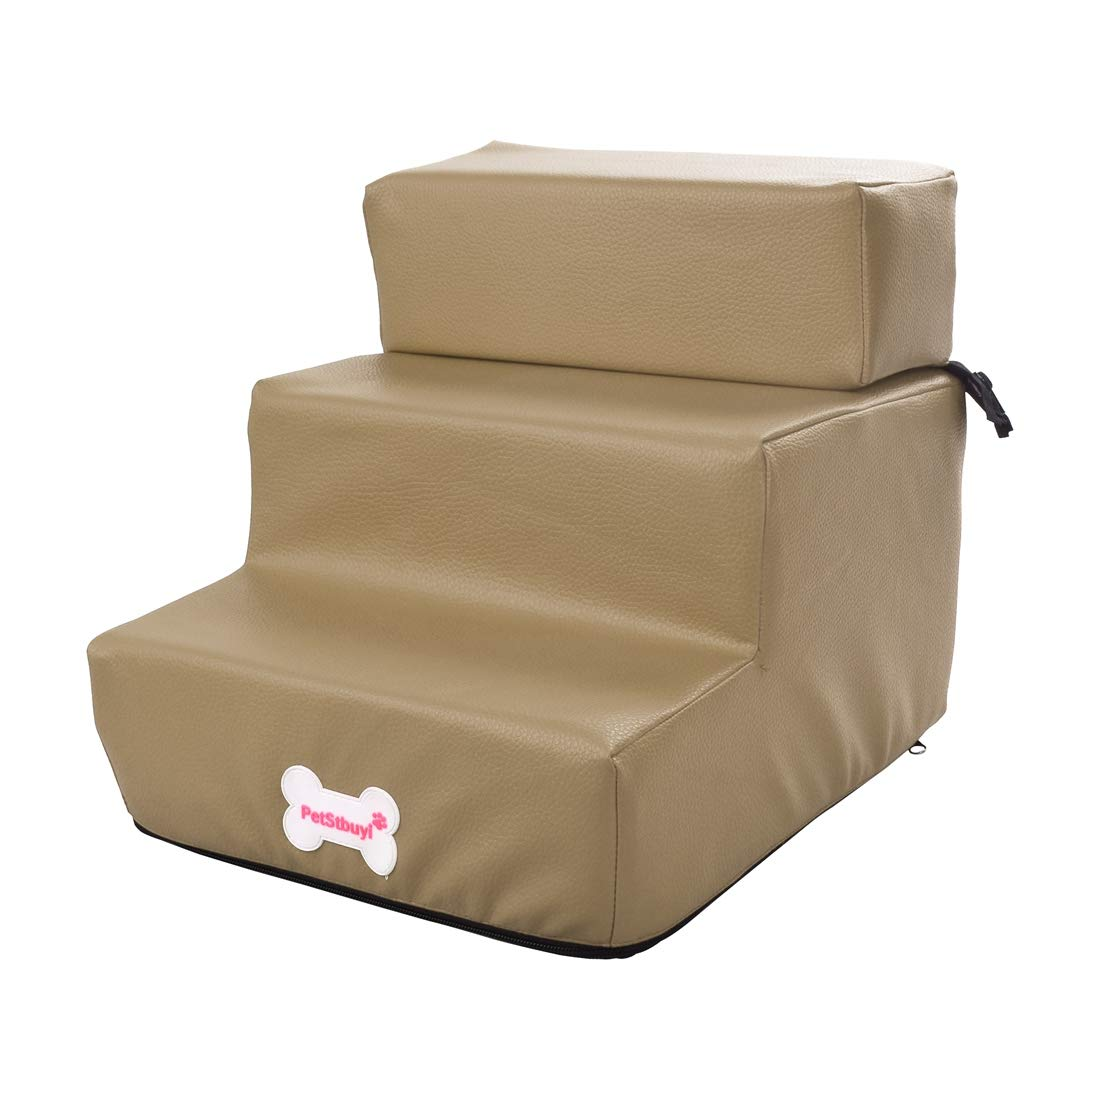 Freahap Pet Stairs Detachable Faux Leather 3 Steps Stairs for Dogs Cats Khaki by Freahap